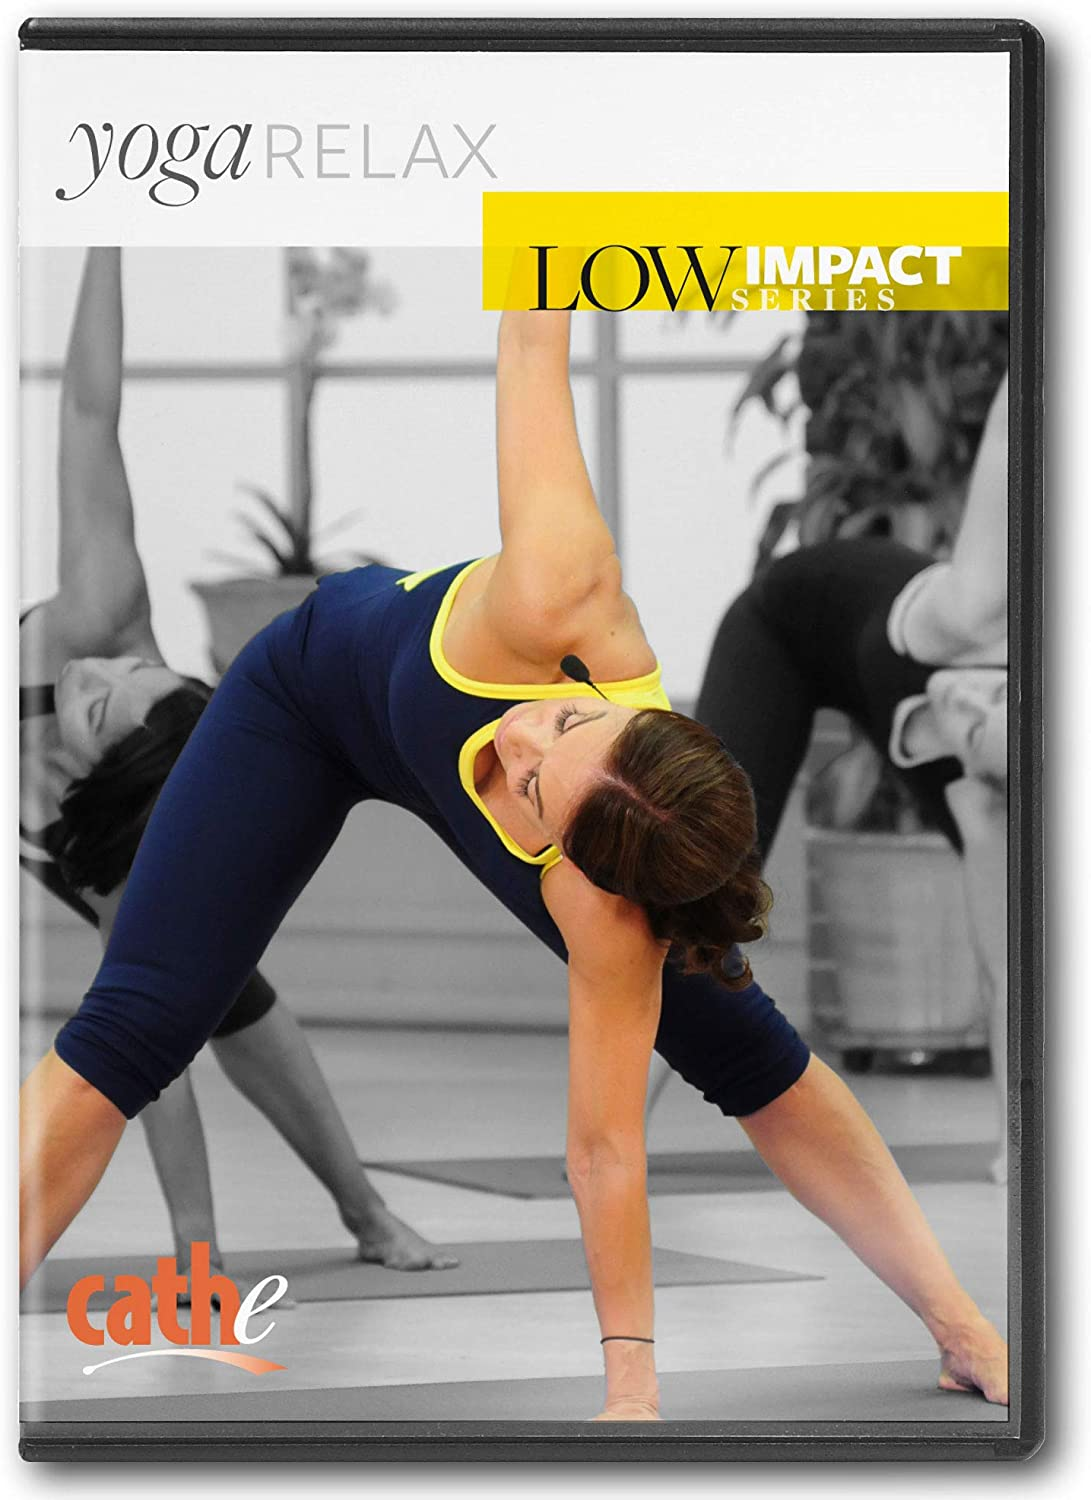 Cathe Friedrich's Low Impact Series: Yoga Relax